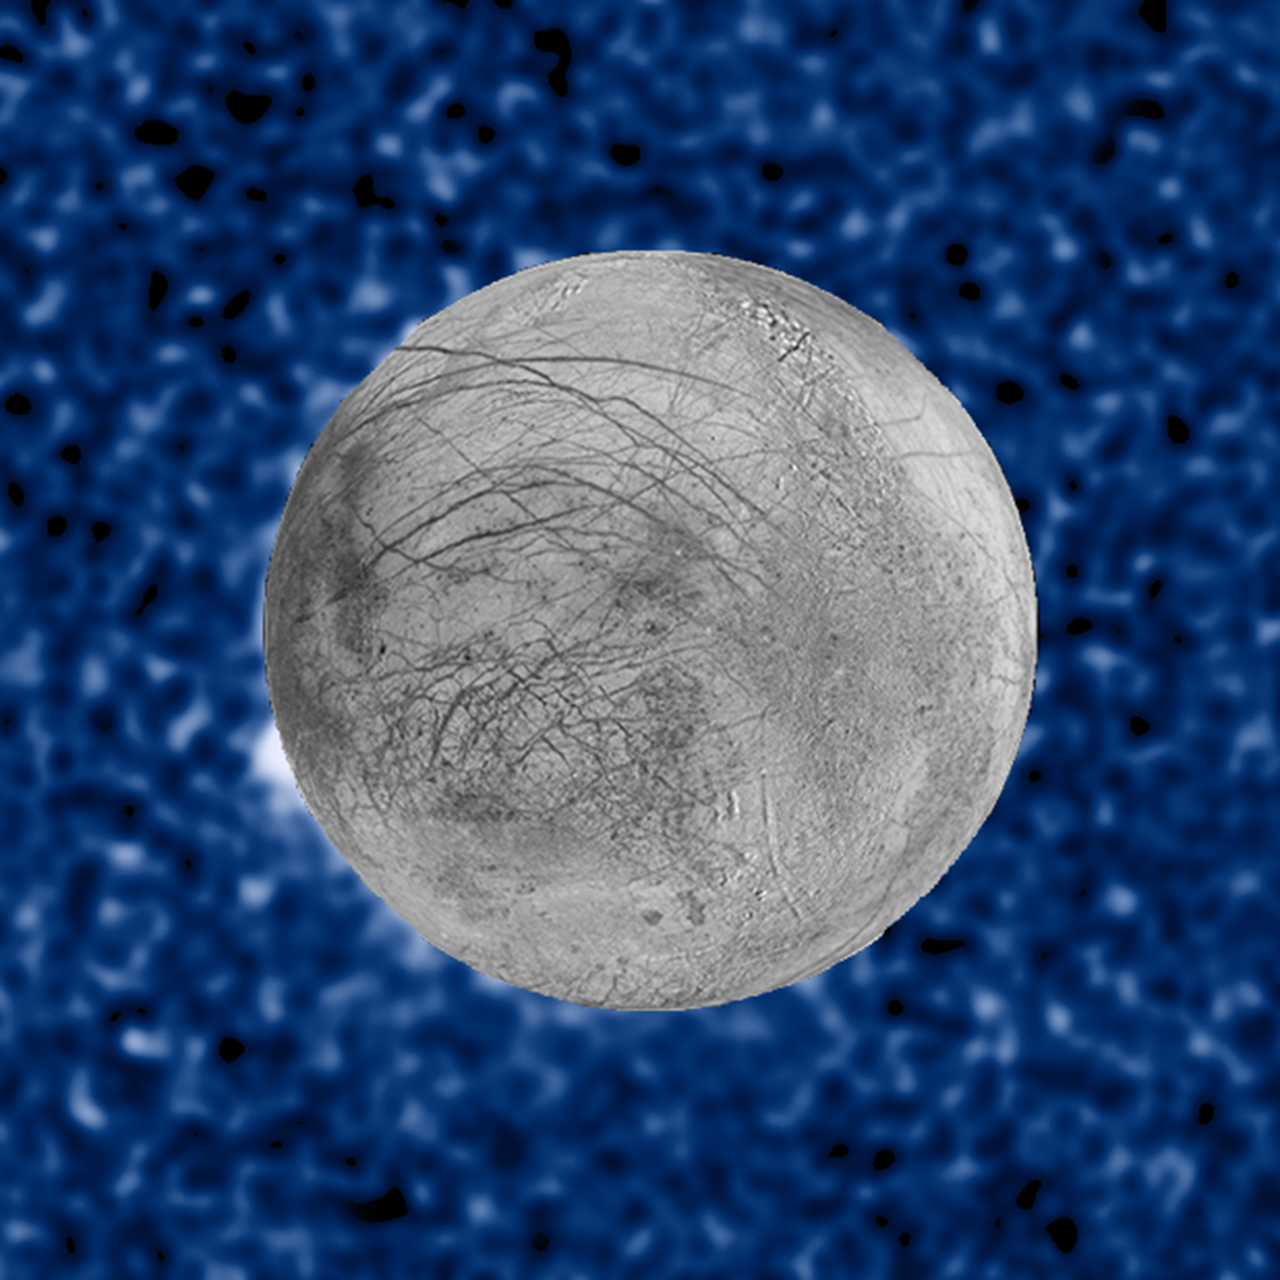 Plume erupting from Europa